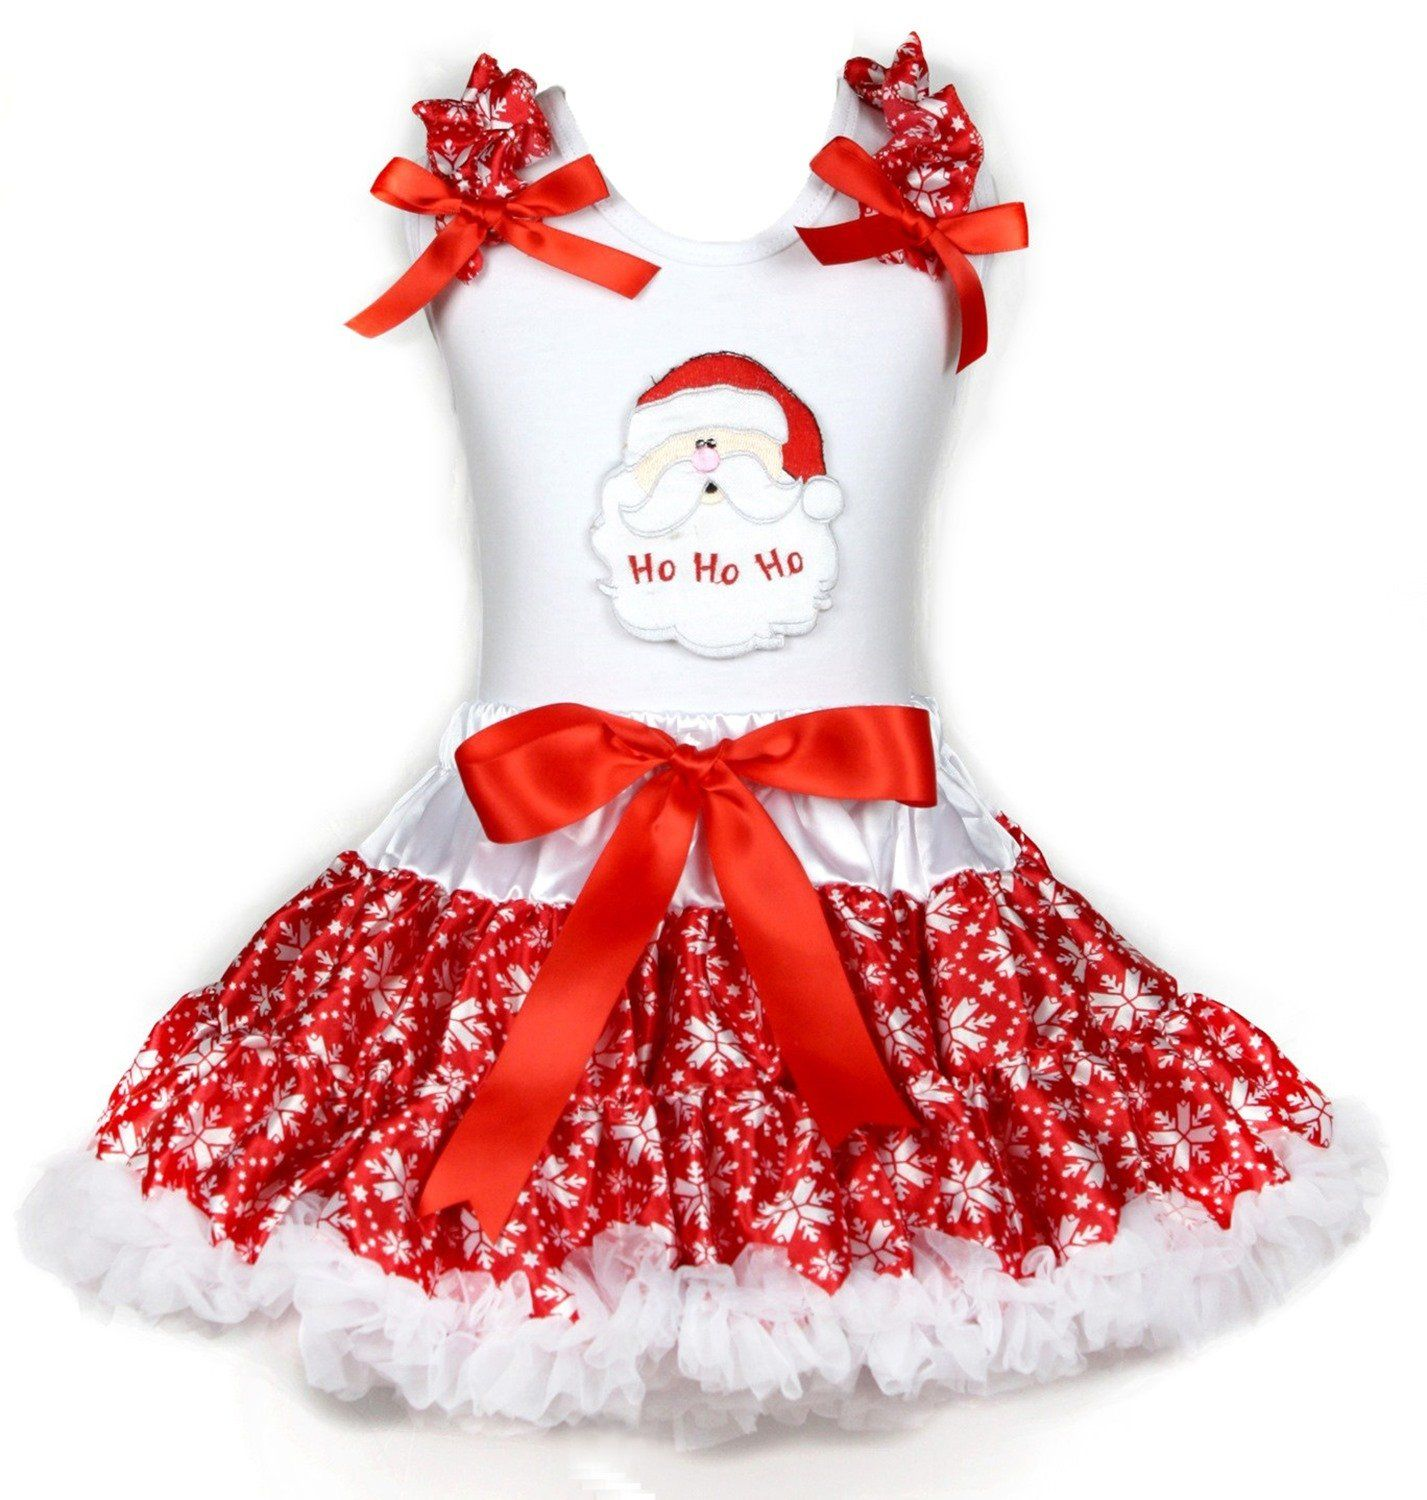 Petitebella 1st Birthday Dress White Shirt Red White Dot Skirt Outfit Set 1-8y